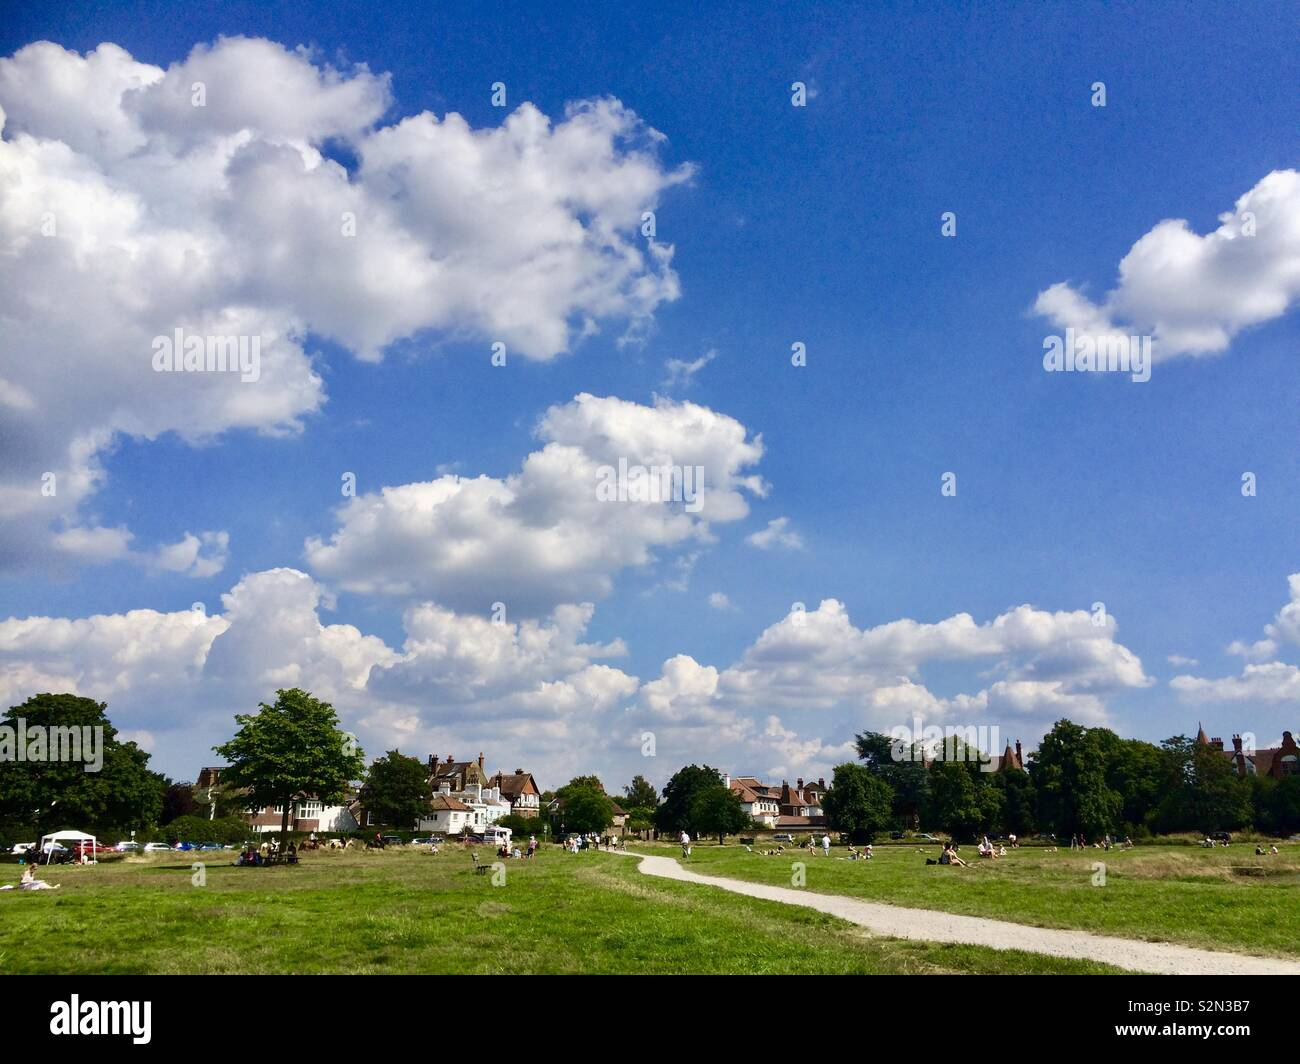 e6e7dc5bf9130 Wimbledon, London - July 2016: Wimbledon Common on a bright sunny day. -